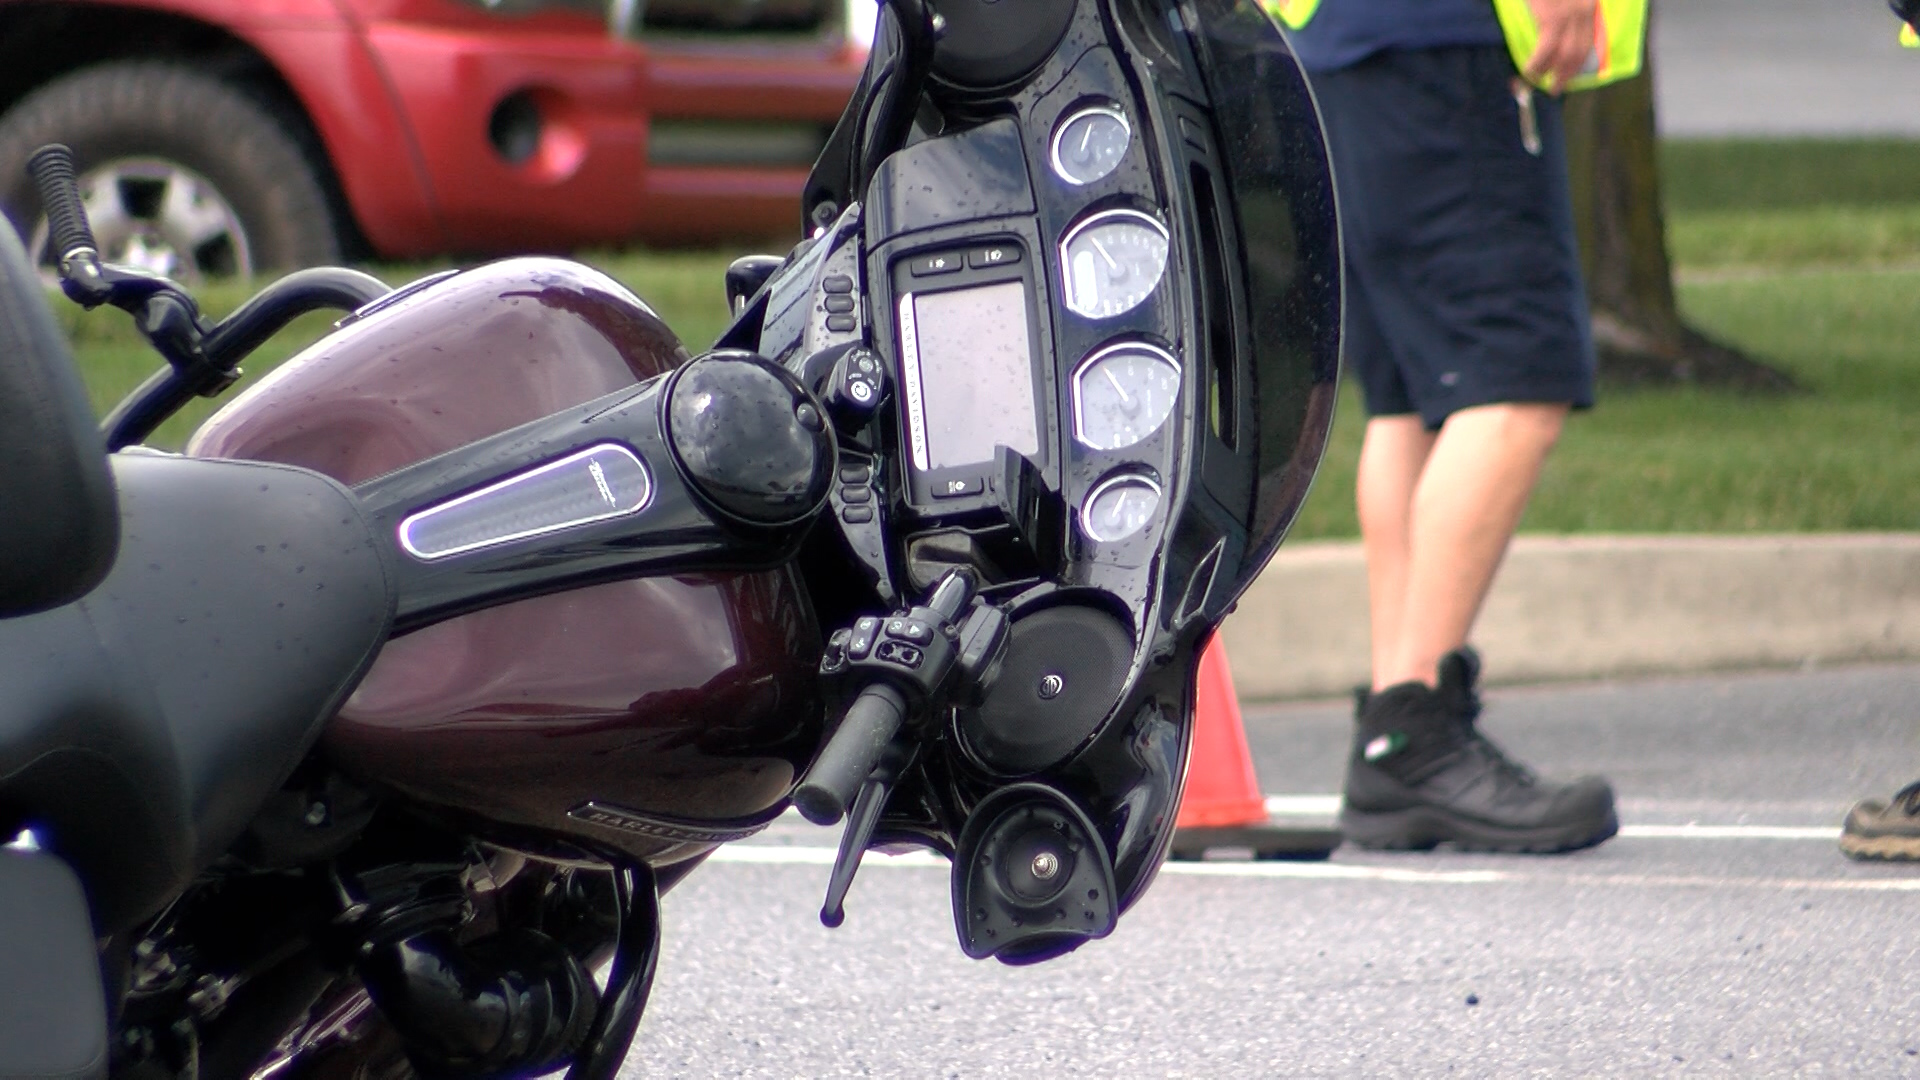 Motorcyclist in serious condition after Hagerstown accident